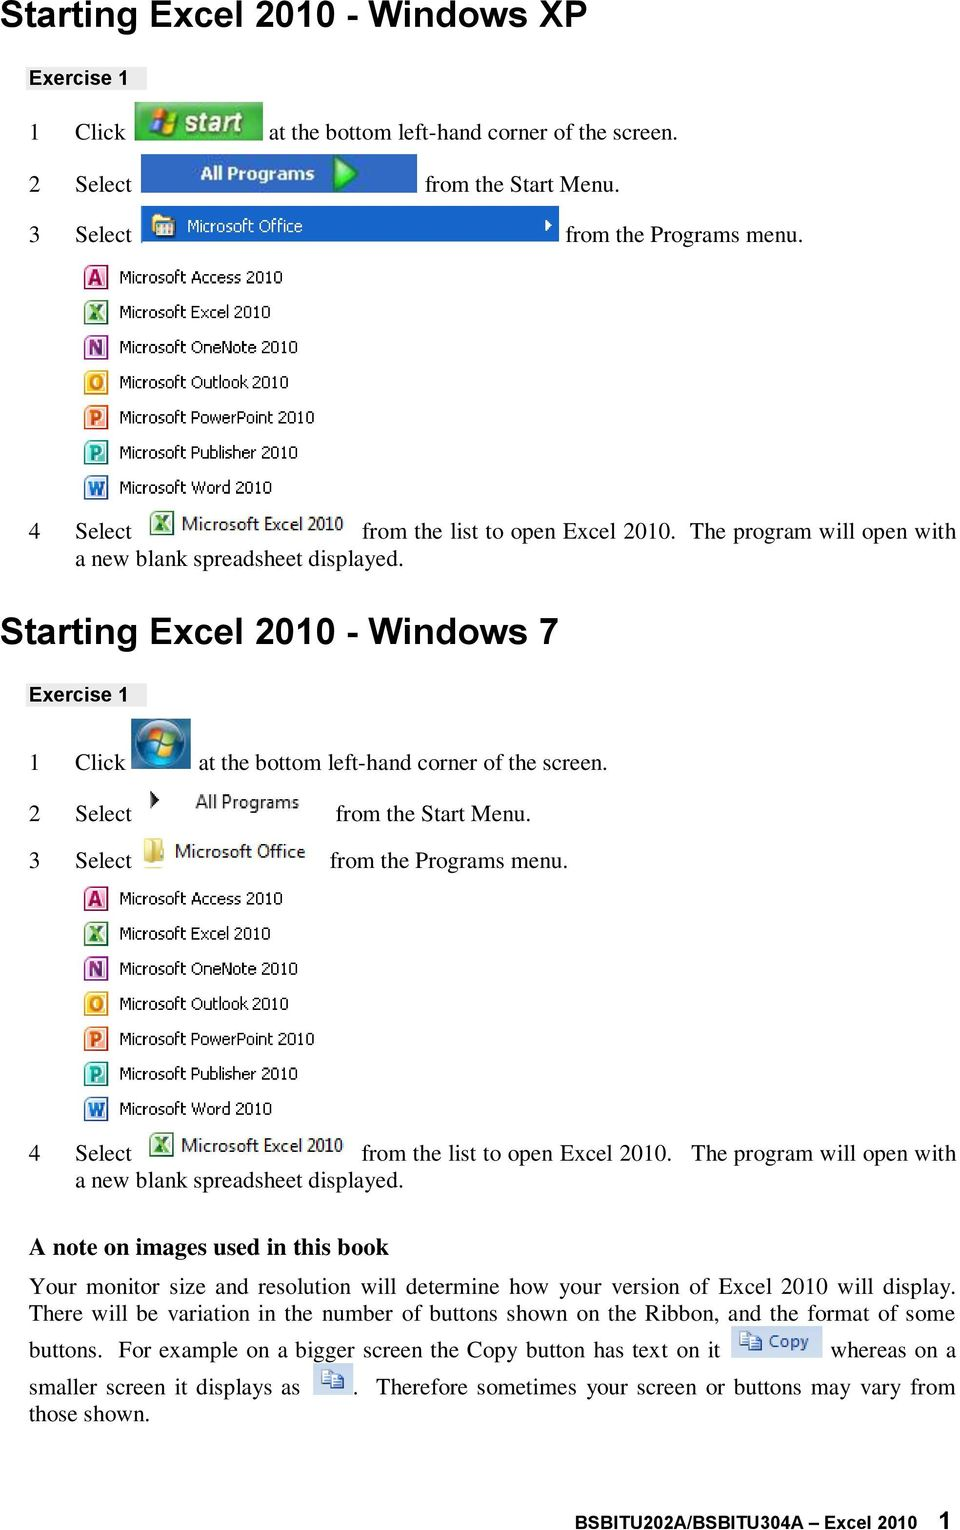 Starting Excel 2010 - Windows 7 Exercise 1 1 Click at the bottom left-hand corner of the screen. 2 Select from the Start Menu. 3 Select from the Programs menu.